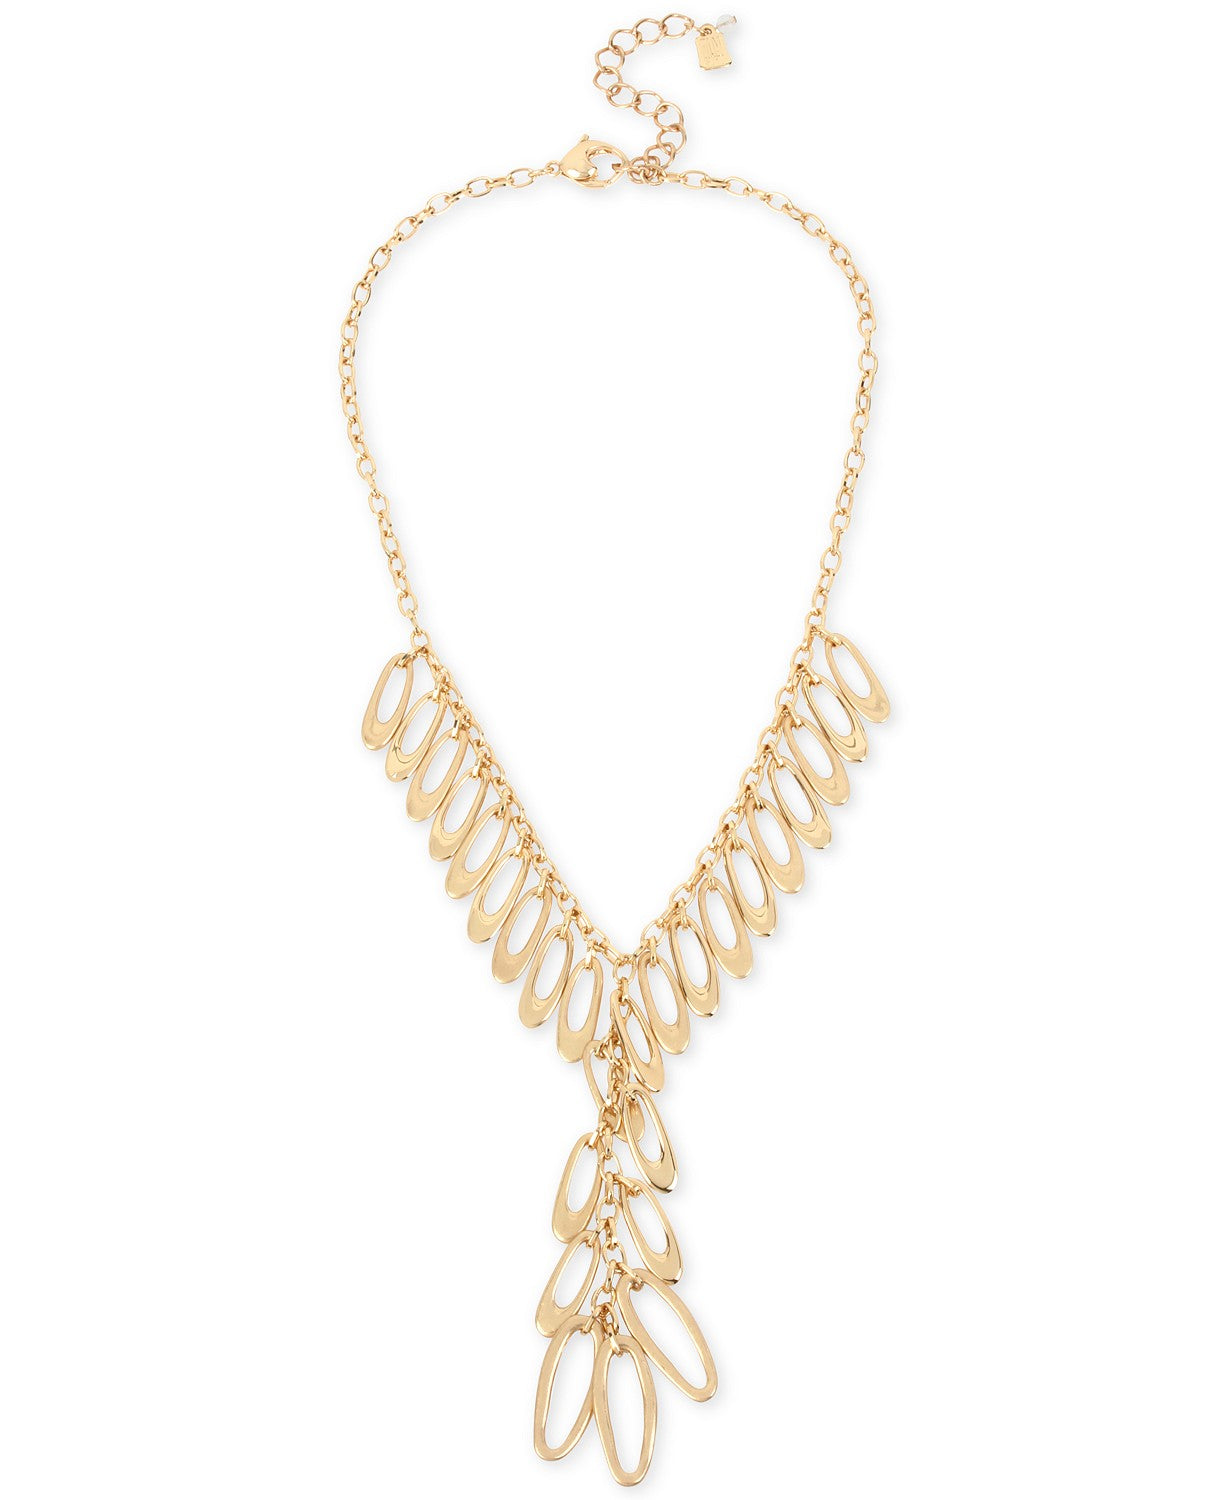 "Robert Lee Morris Soho Gold-Tone Shaky Link Lariat Necklace, 17-1/2"" + 3"" extender"